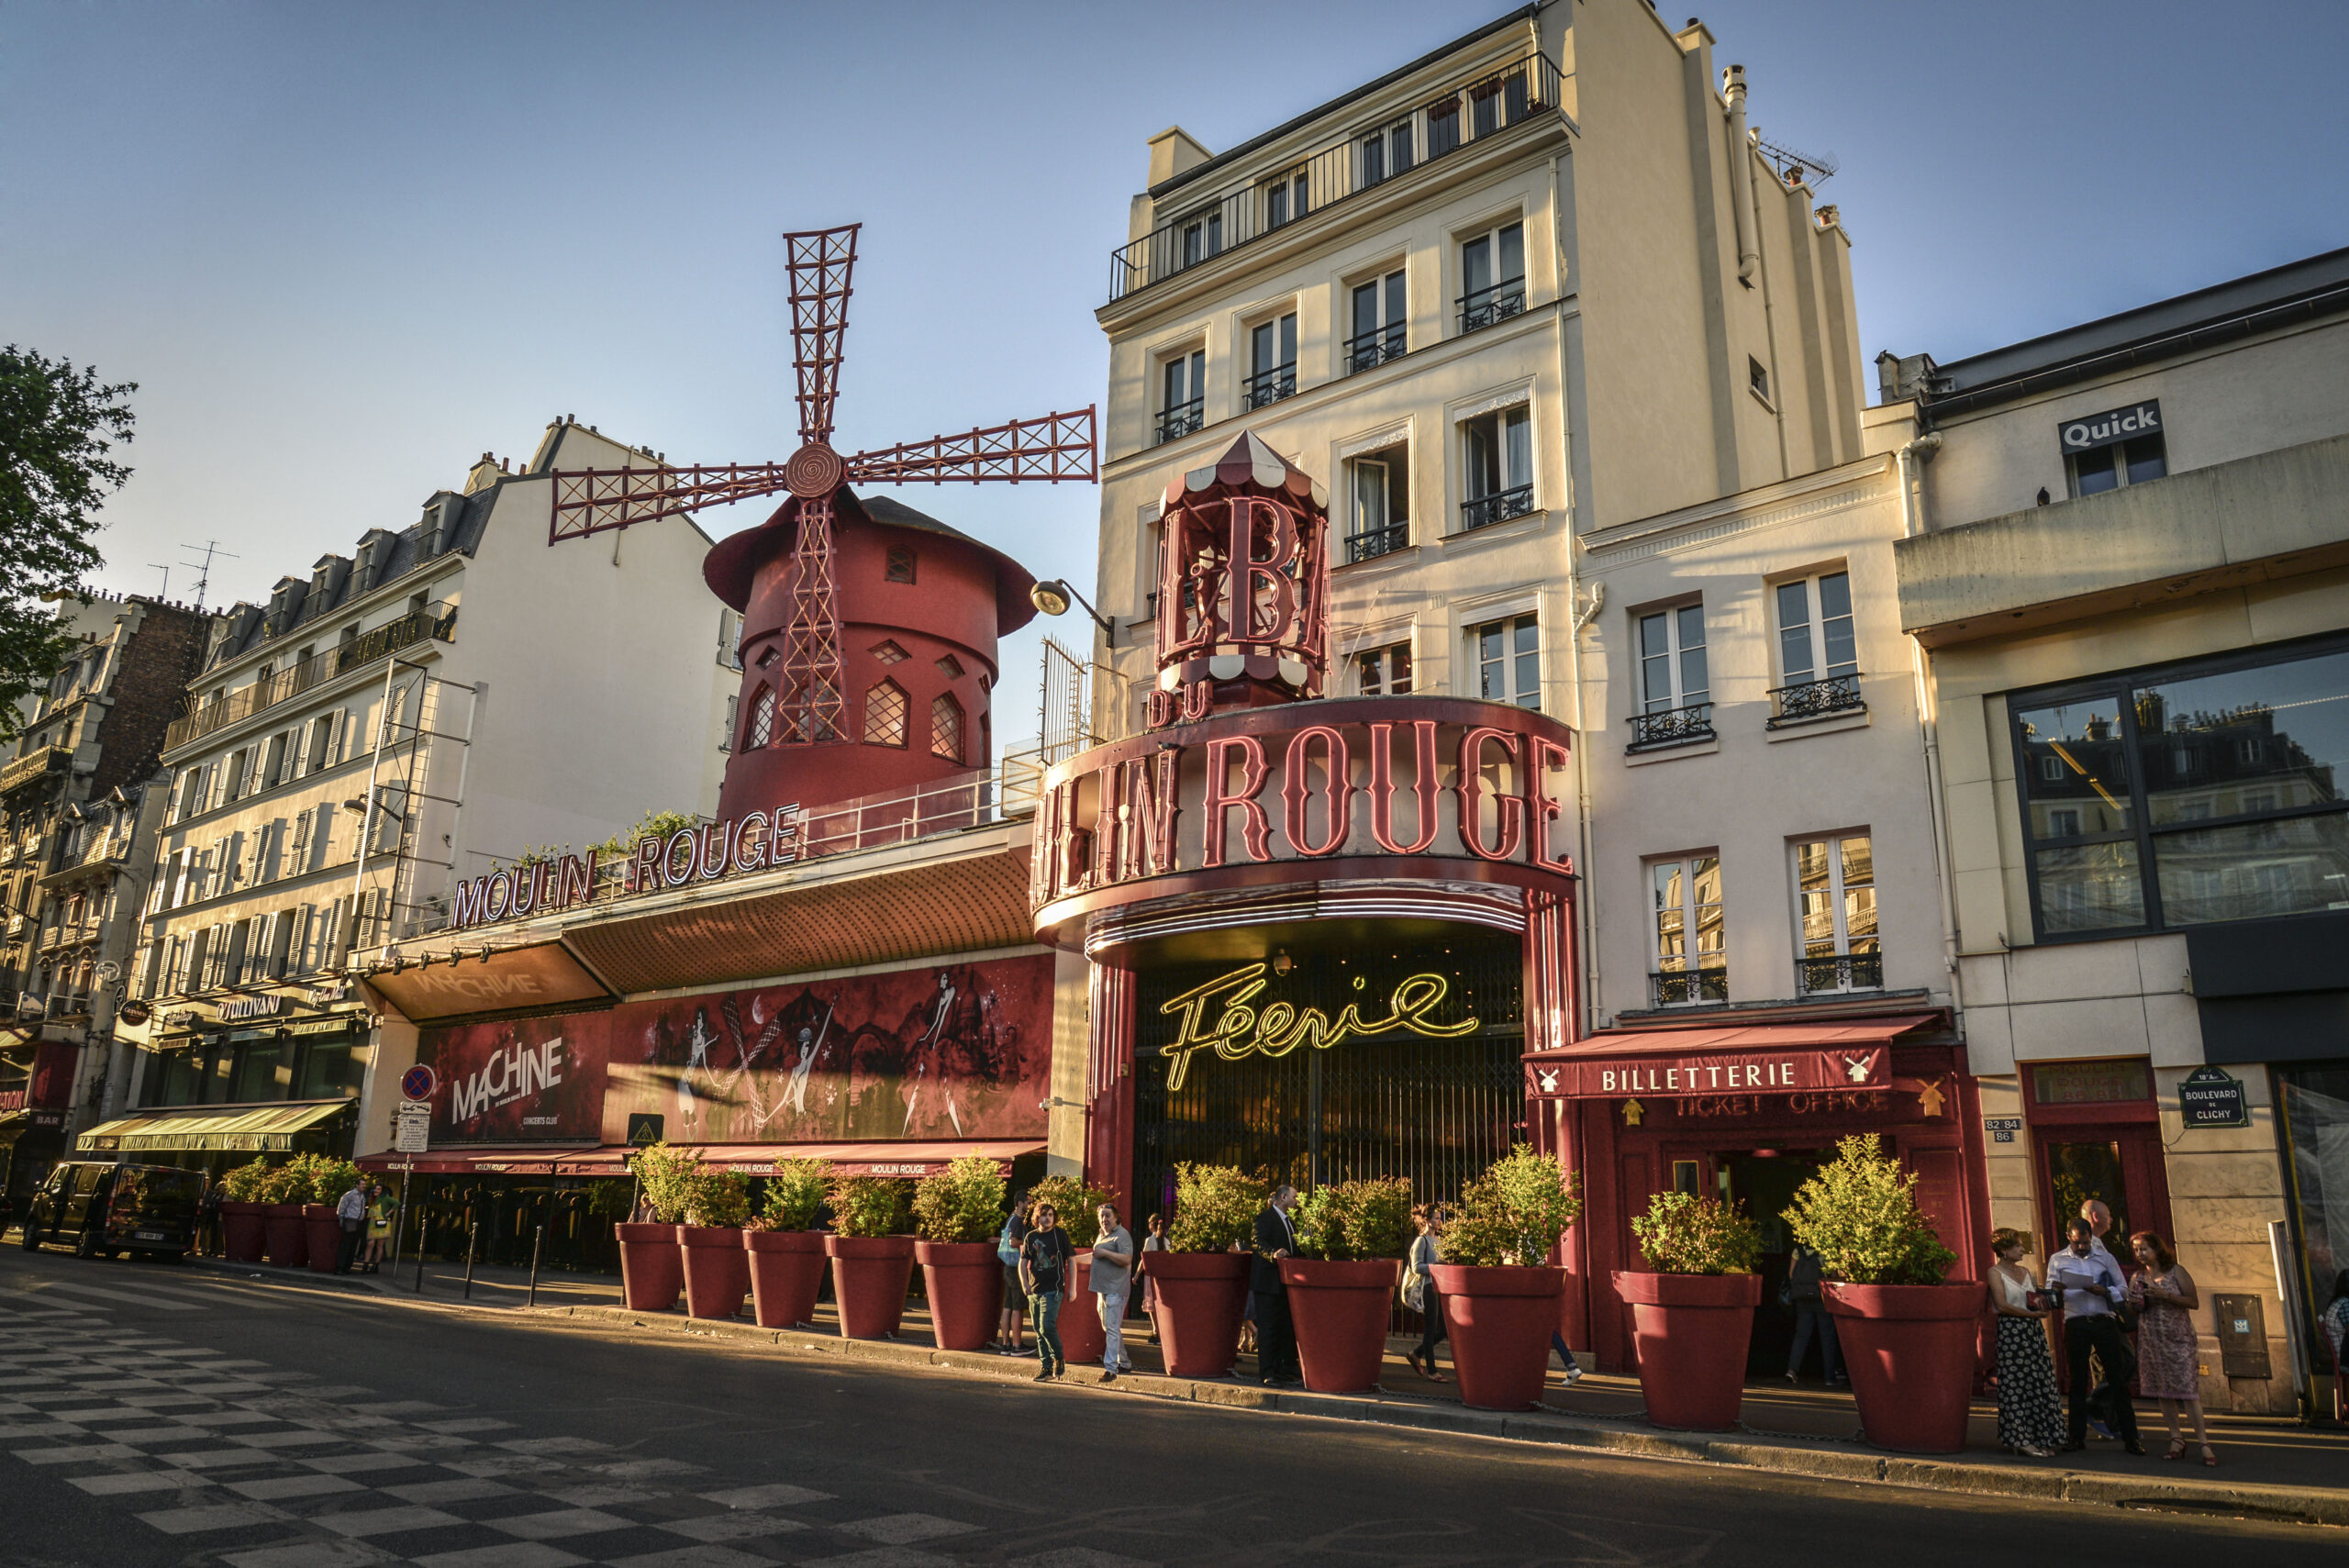 Moulin Rouge Paris teater konsert show cabaret Paris